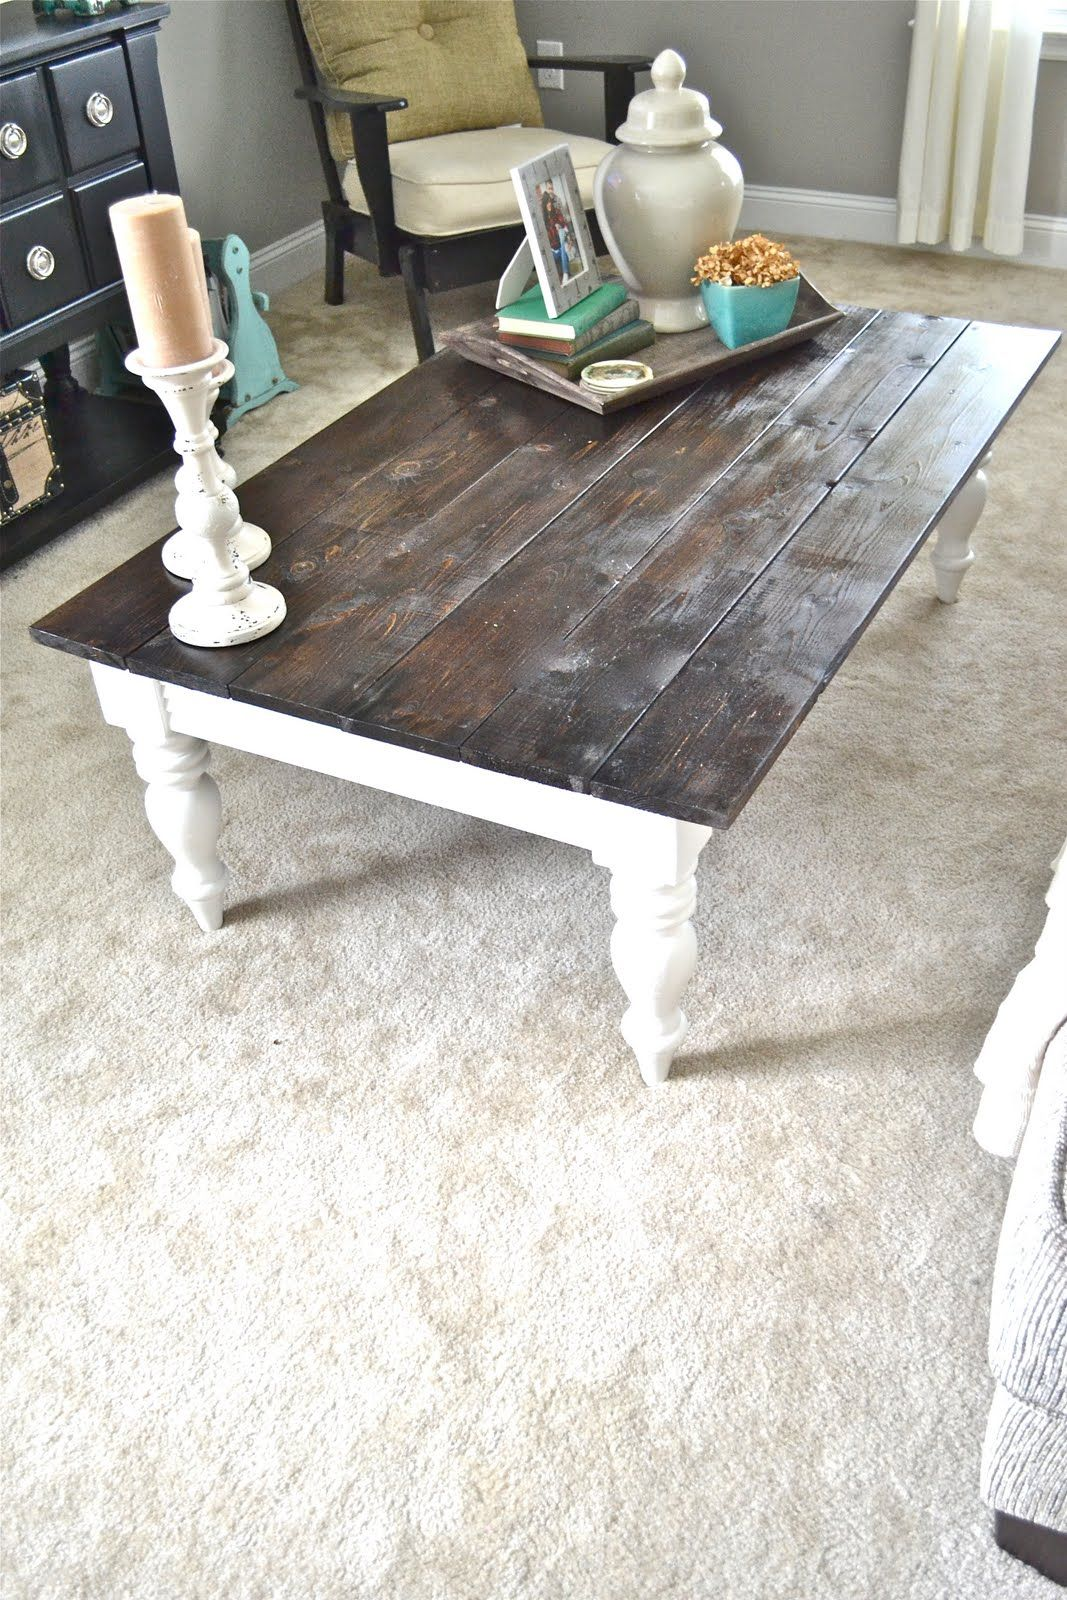 Refurbished Coffee Tables And End Me Favorite Scheme Dark Wood While